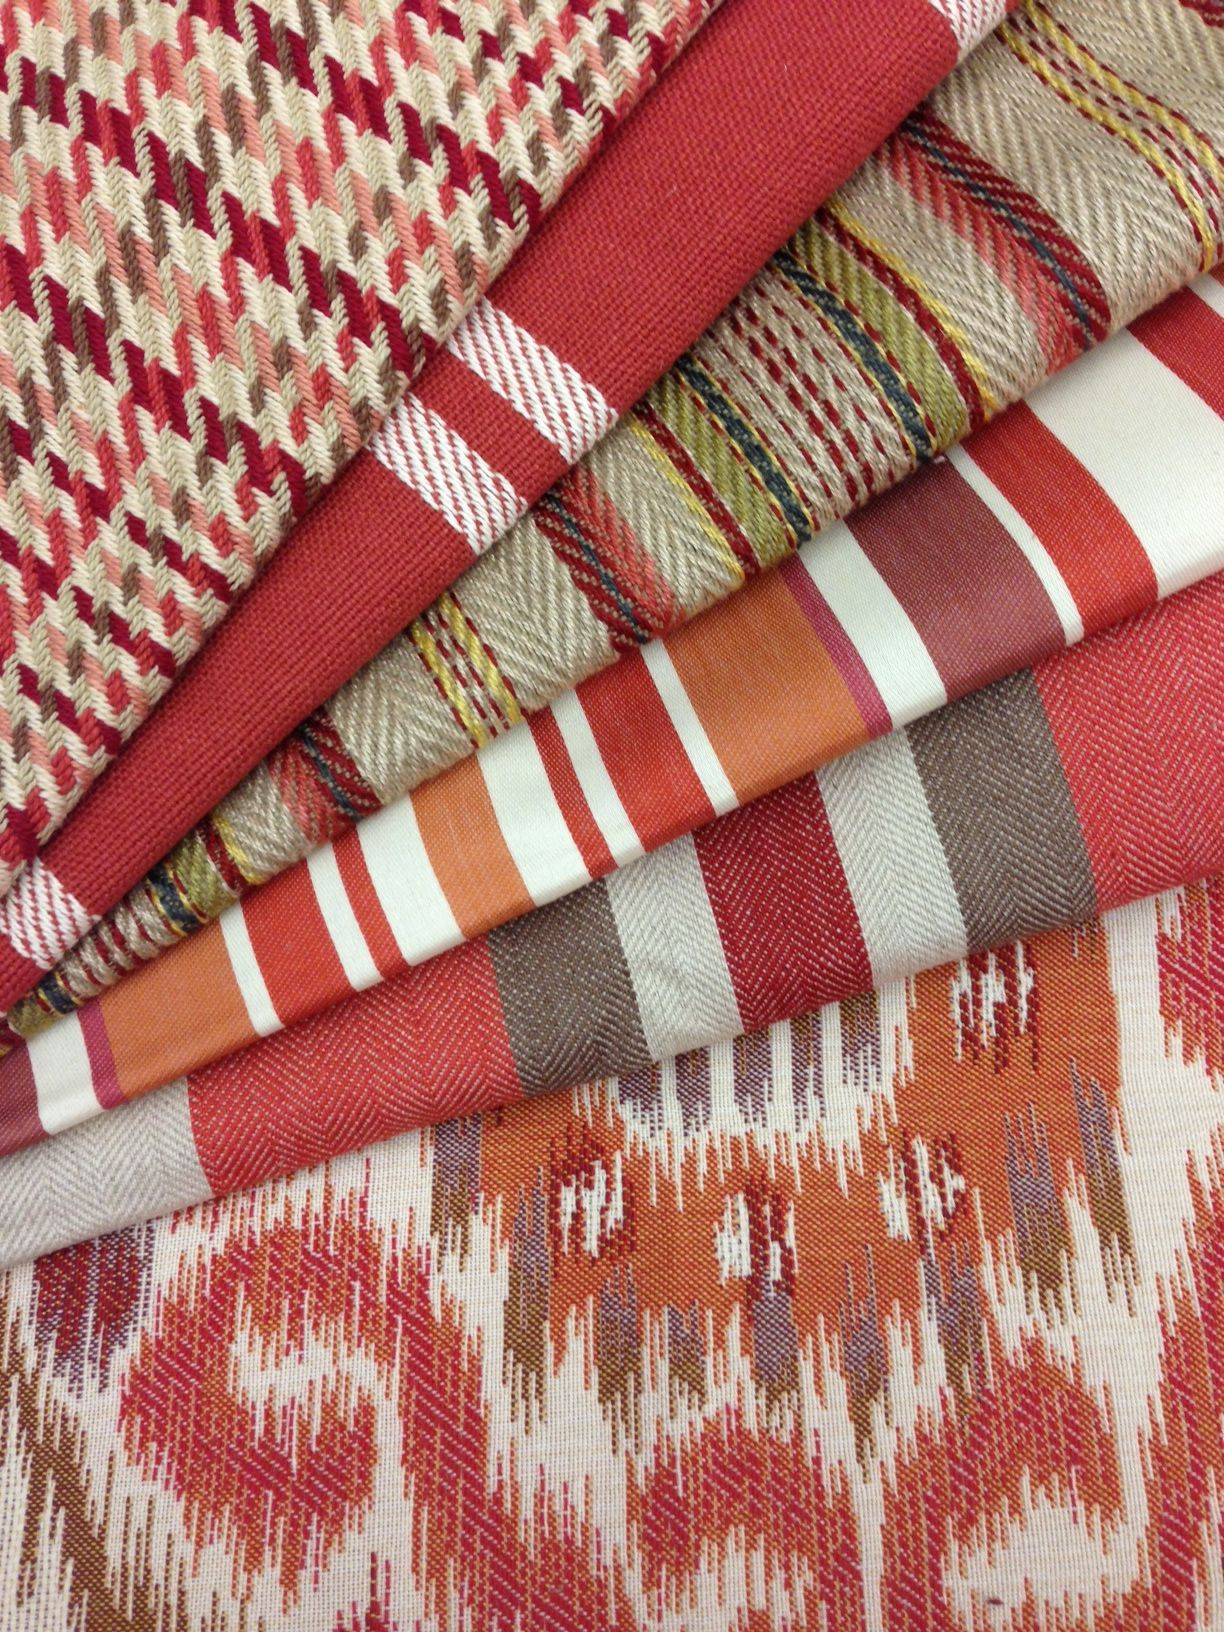 Fall Fabric Obsessions - fabrics by Kravet and Gaston